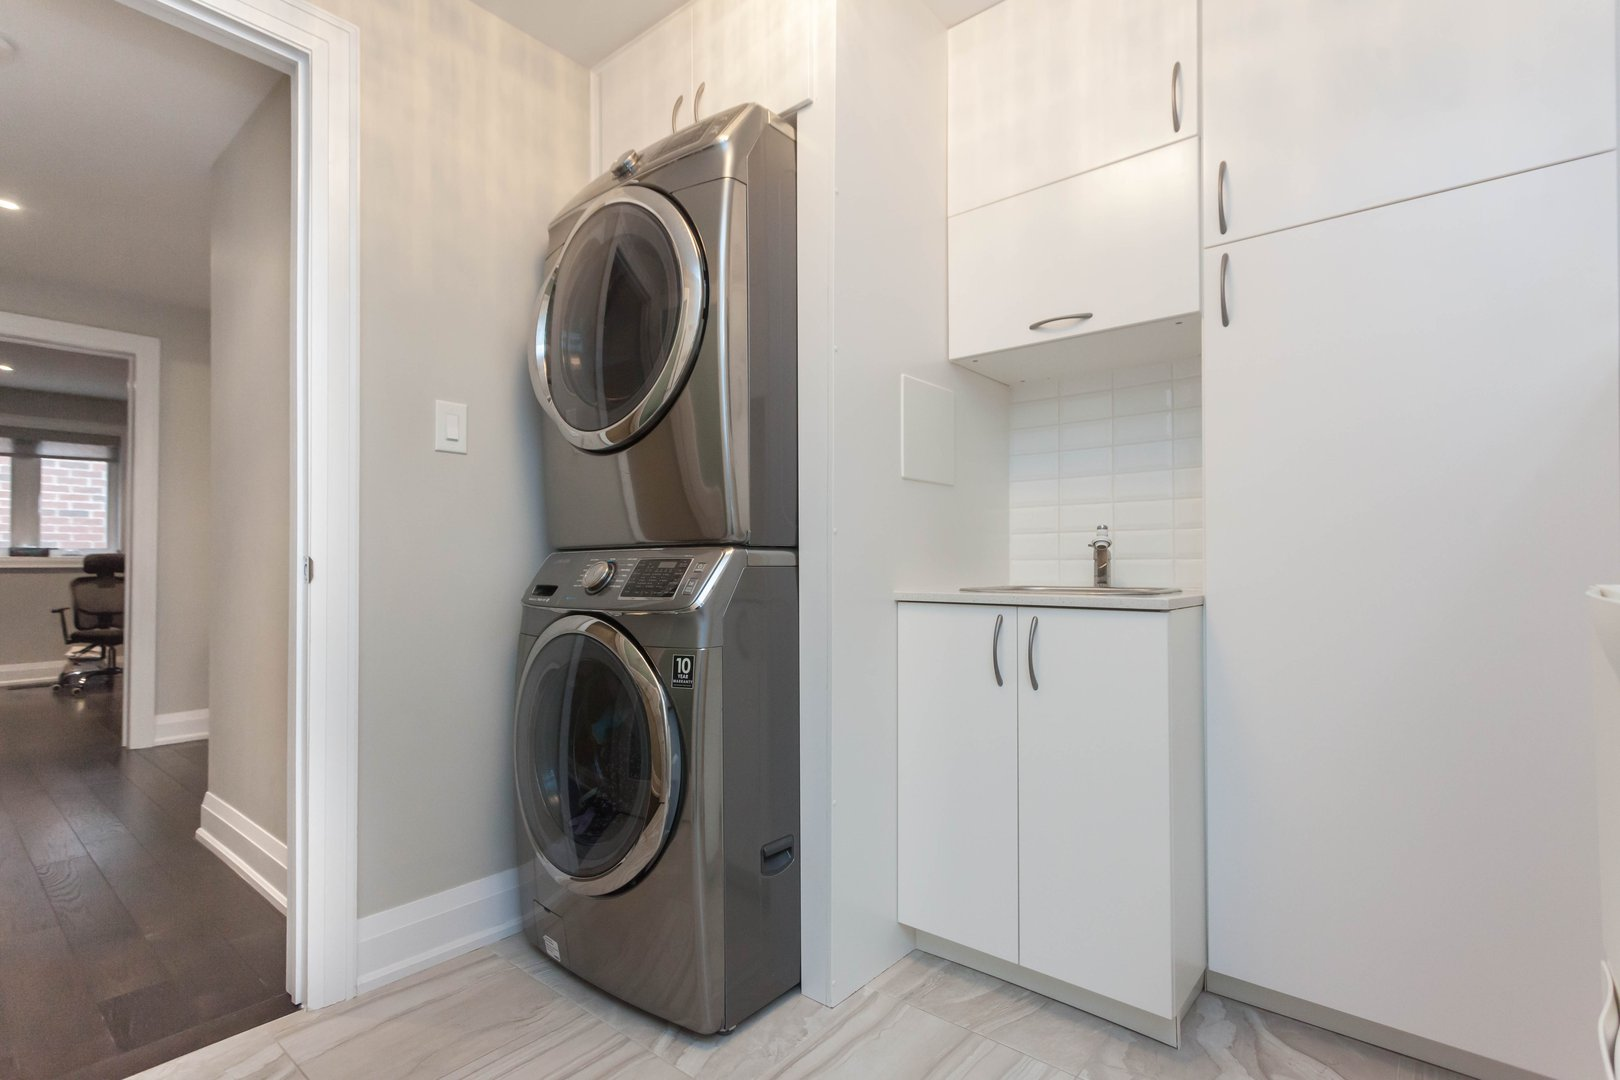 House for rent at 84 Laurel Avenue, Etobicoke, ON. This is the laundry room with natural light and hardwood floor.